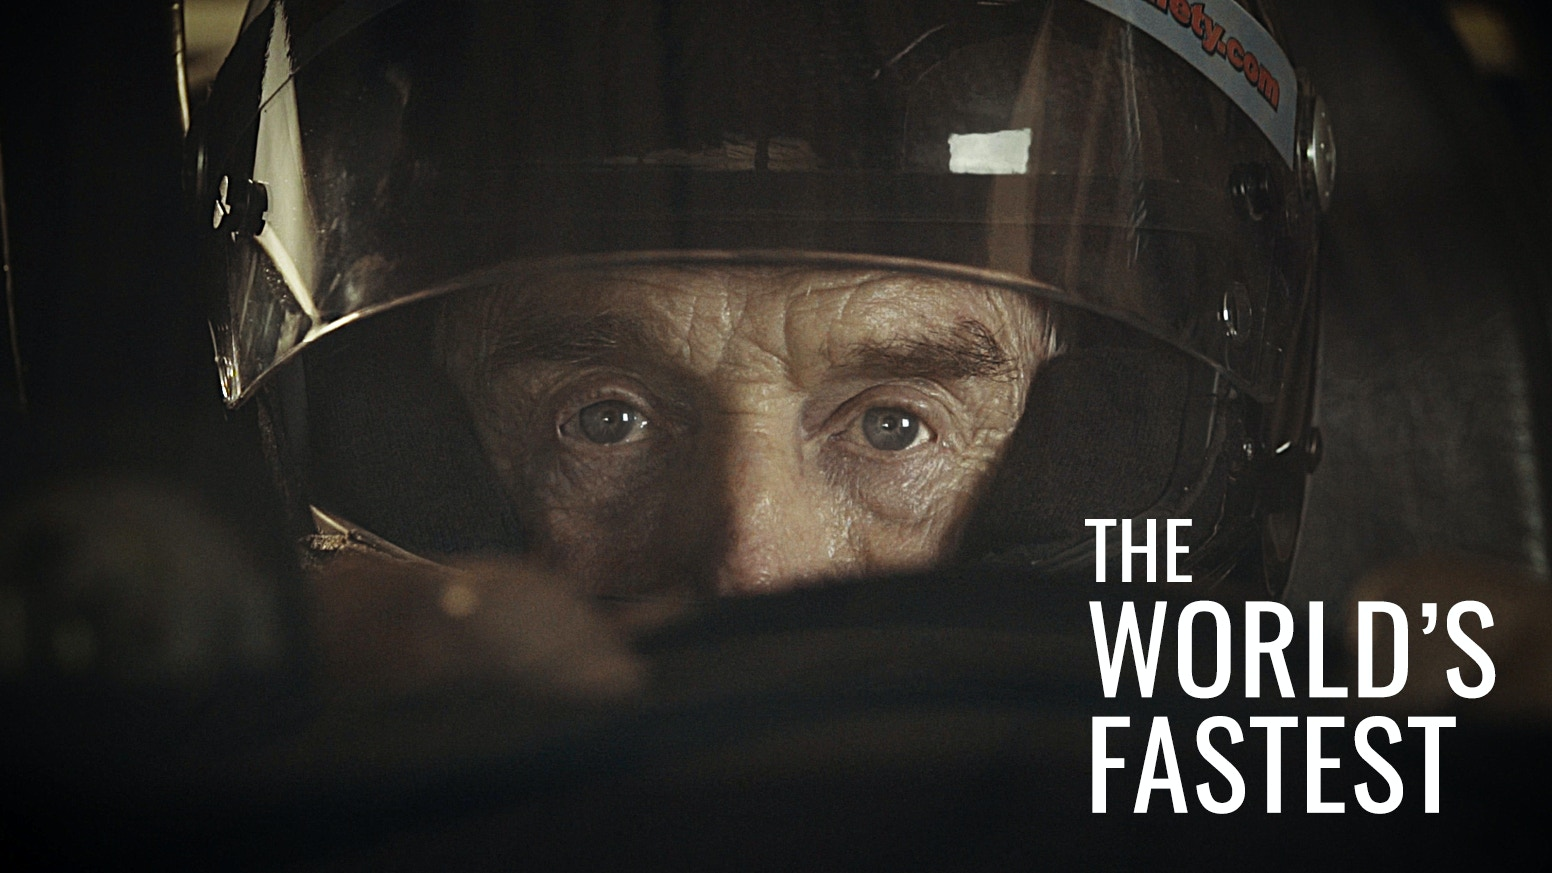 A film about a group of 80-year-old men following their passion by building rocket-like-vehicles and driving them up to 400 mph.